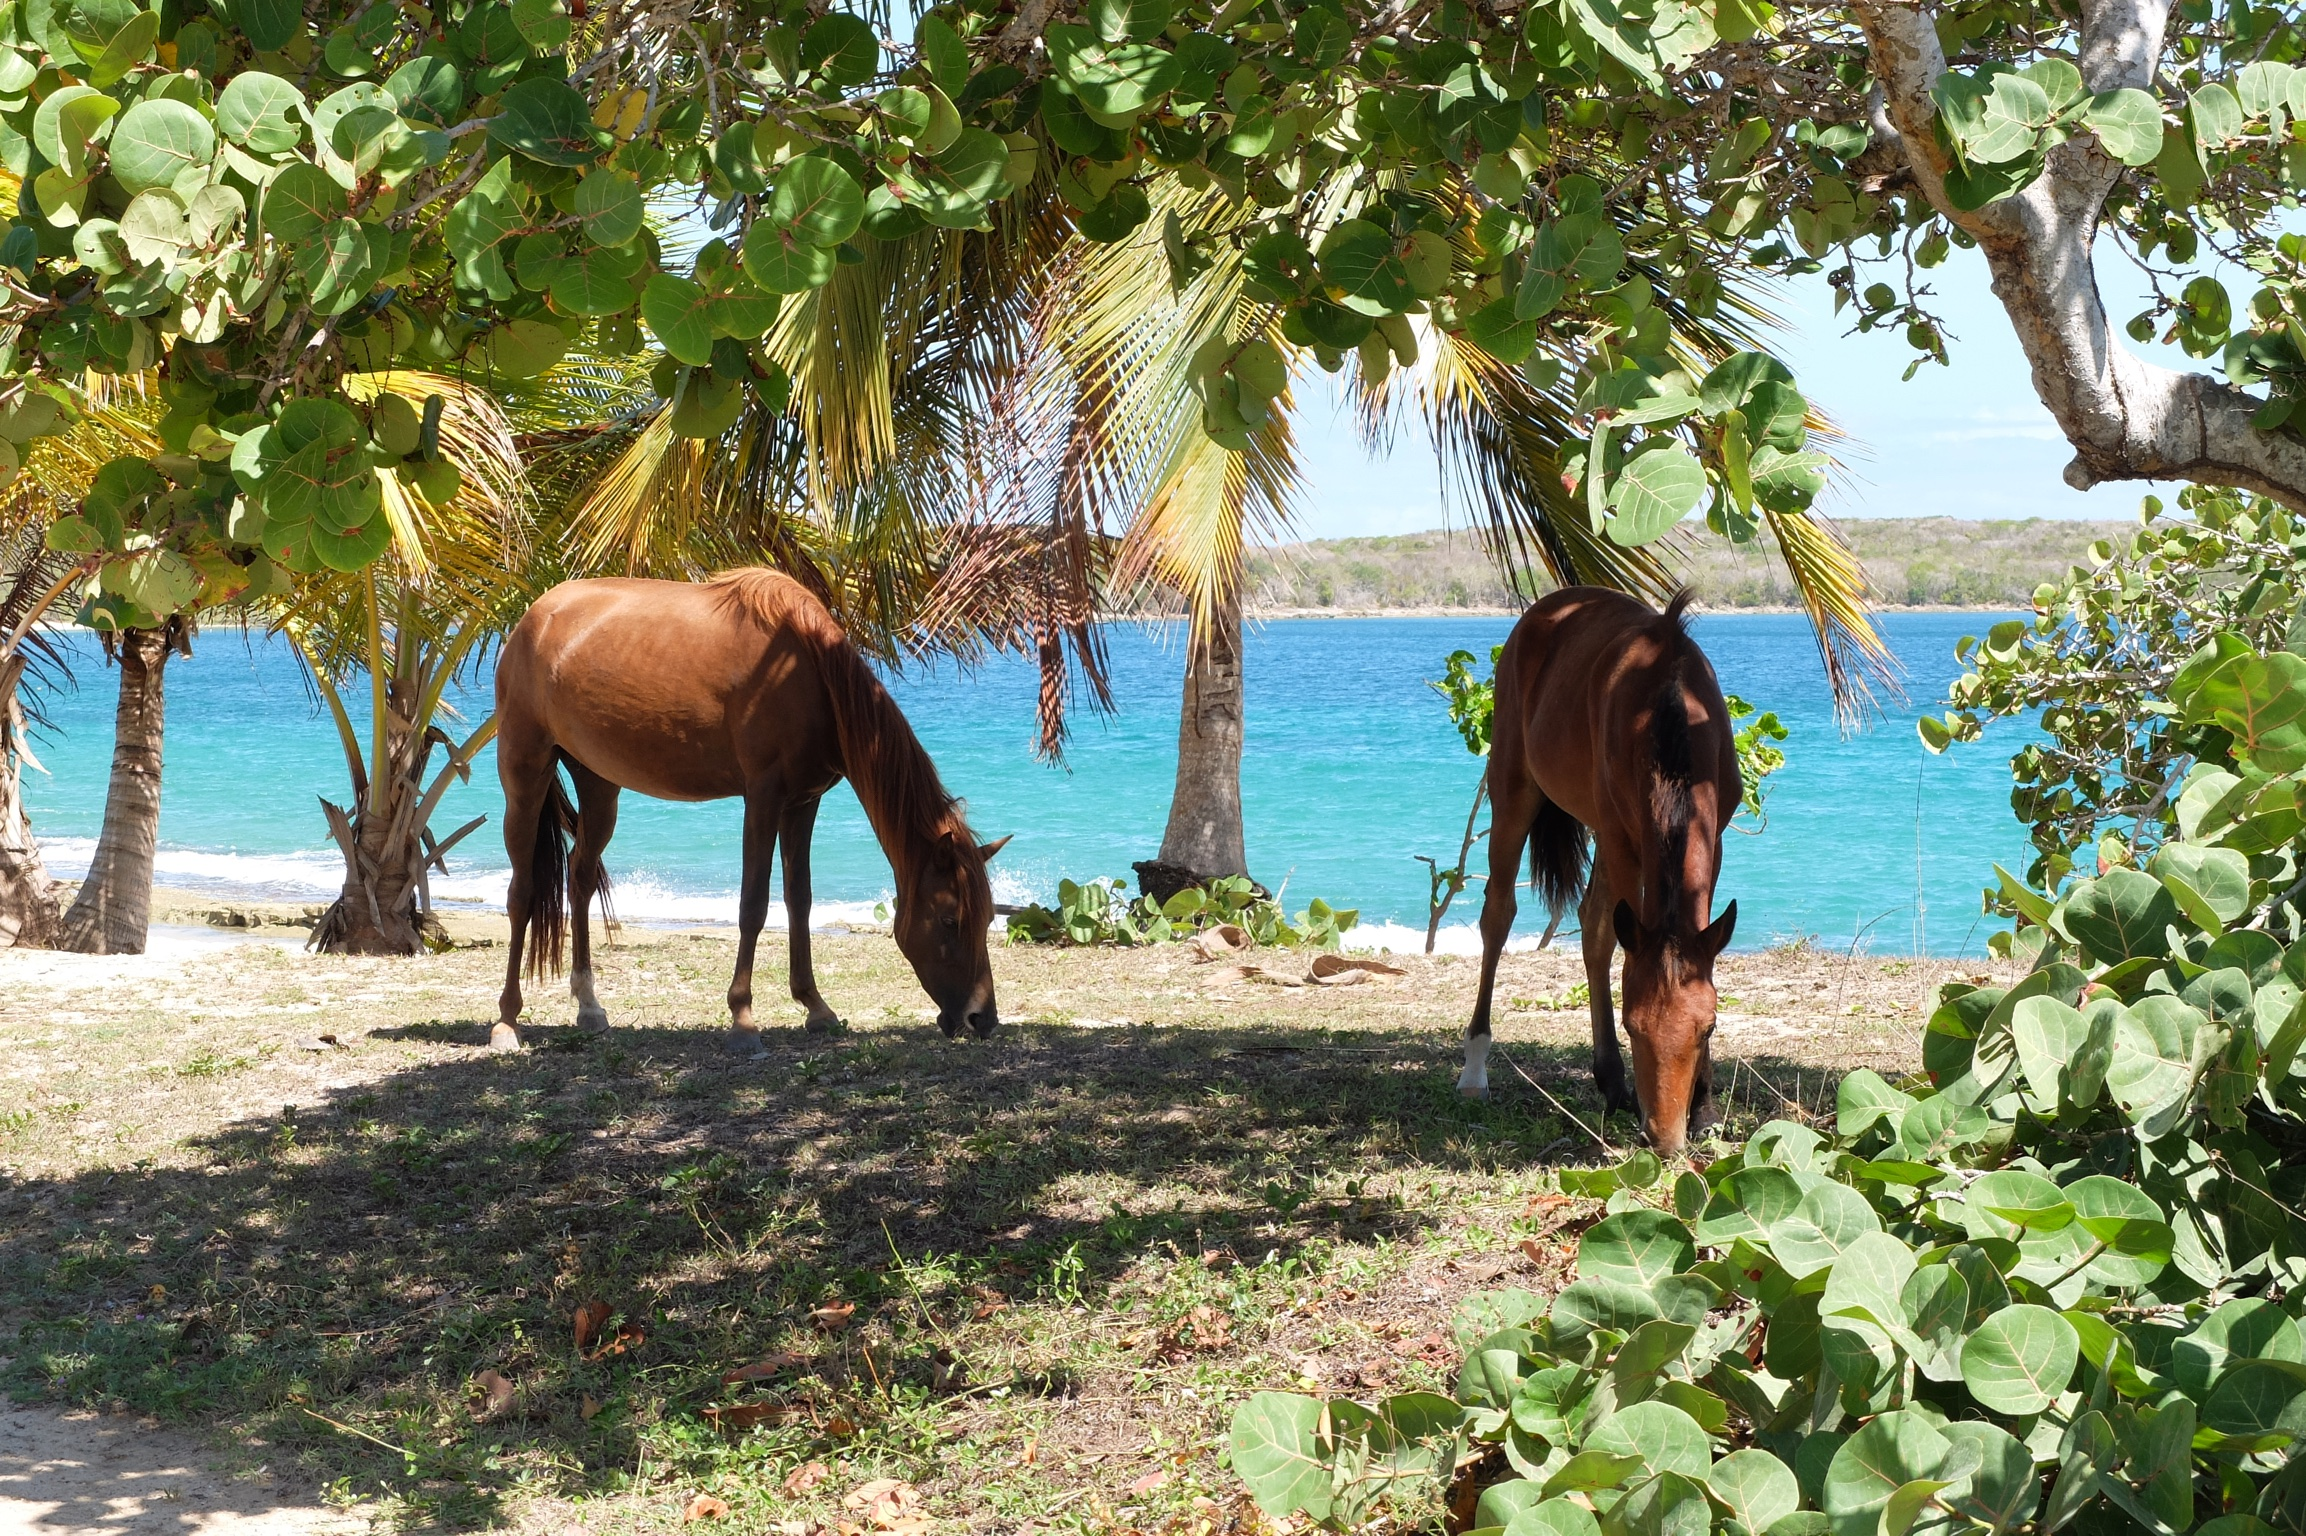 Why Vieques?